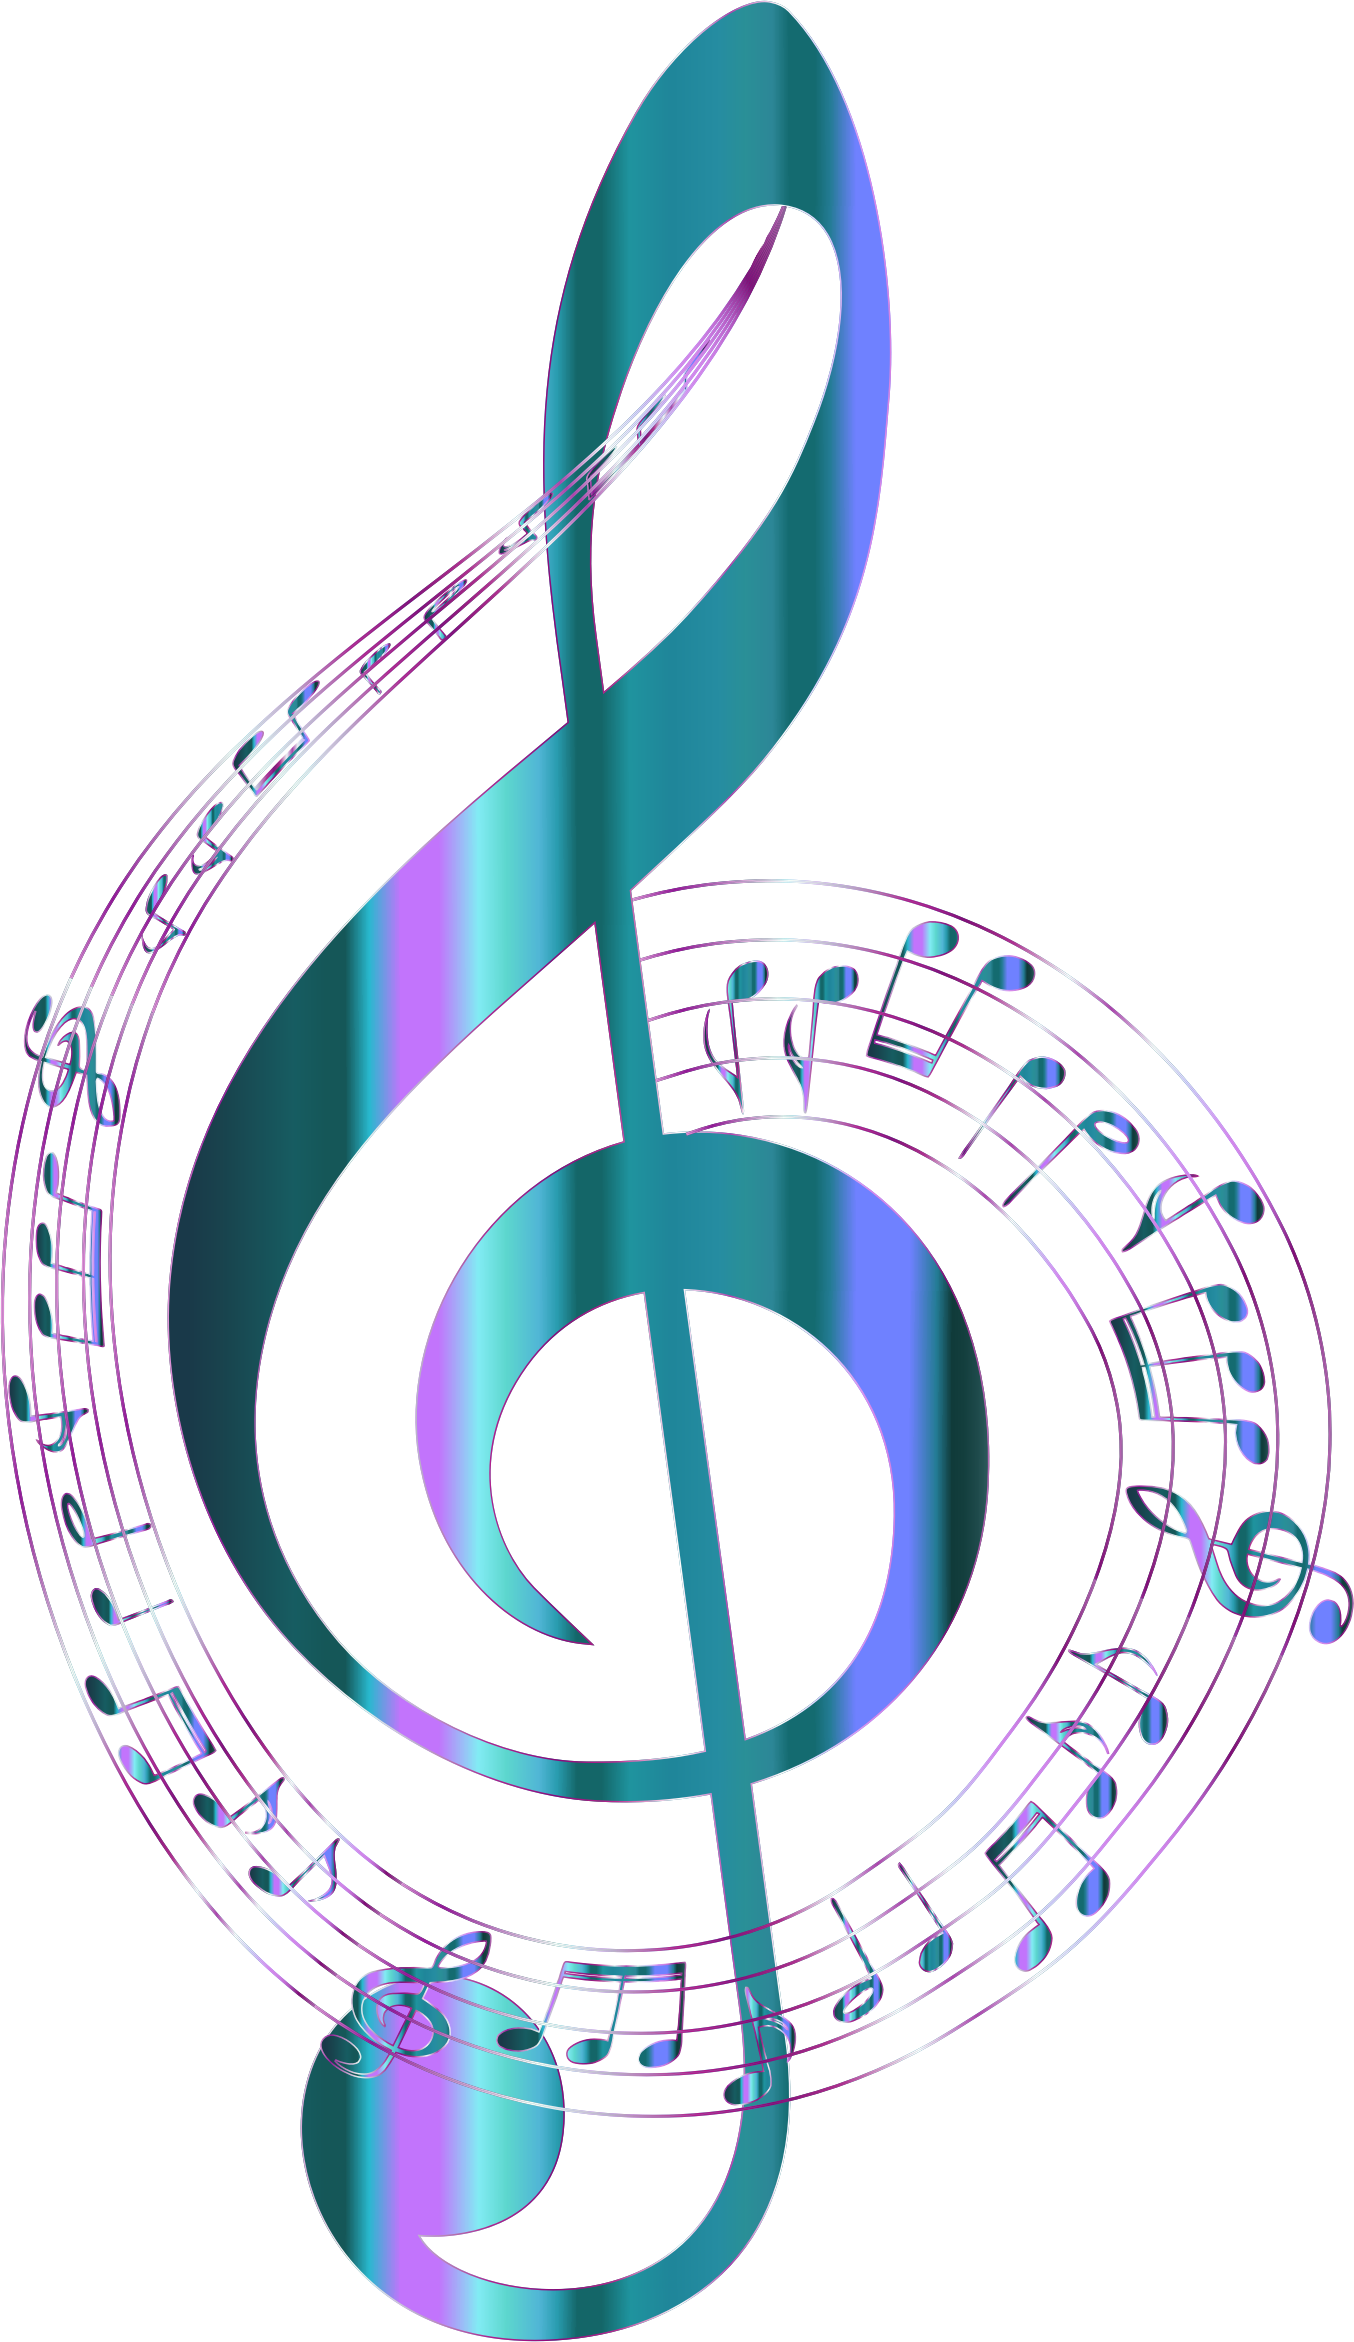 Music clipart download graphic free download Musical note Clip art - Notes png download - 1354*2342 ... graphic free download